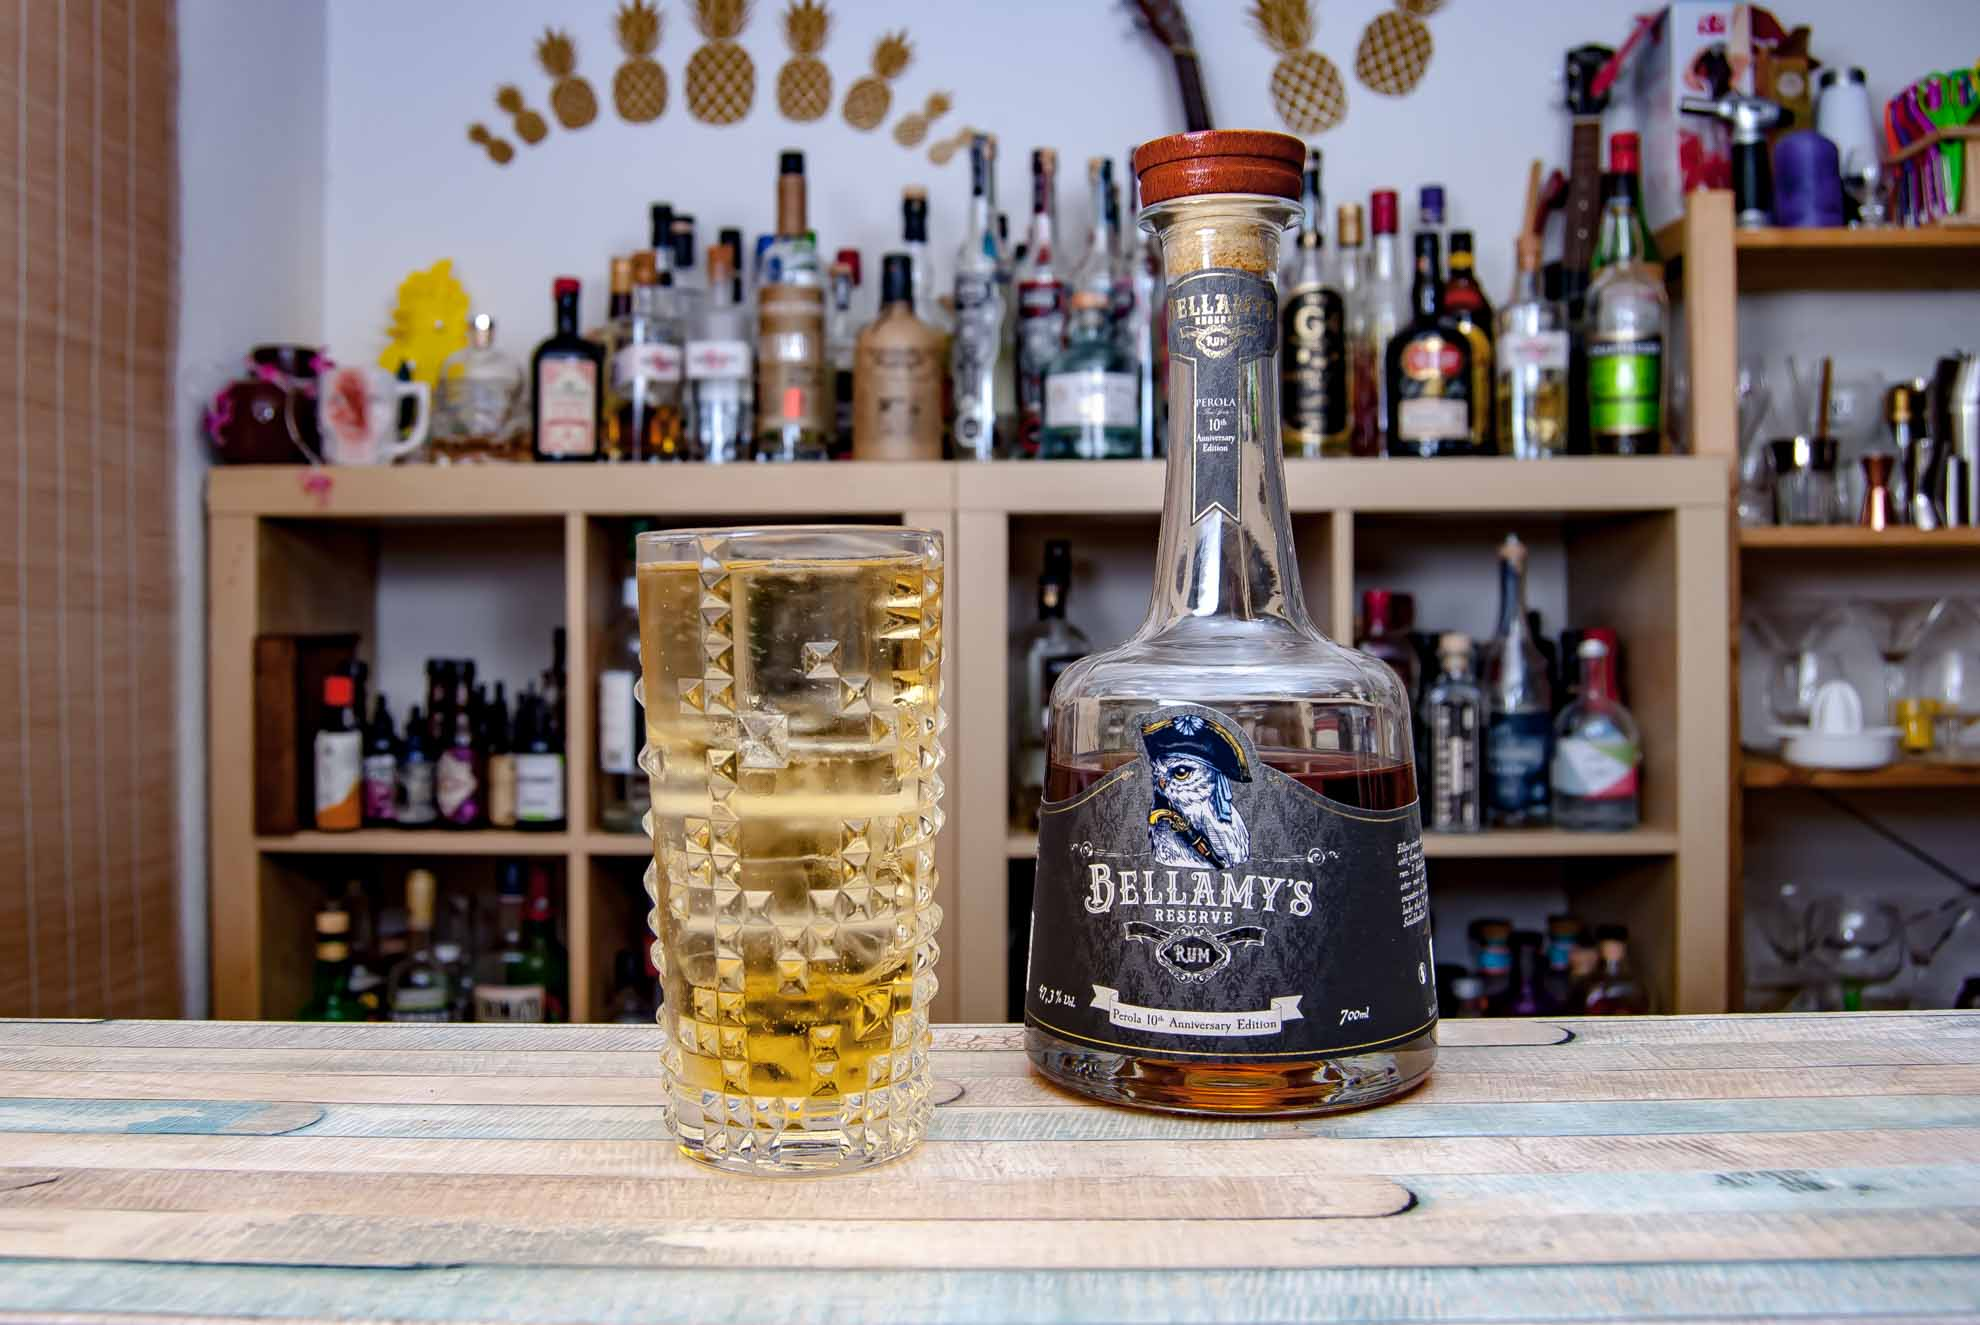 Bellamy's Reserve Rum Perola 10th Anniversary Edition im Rum & Soda.